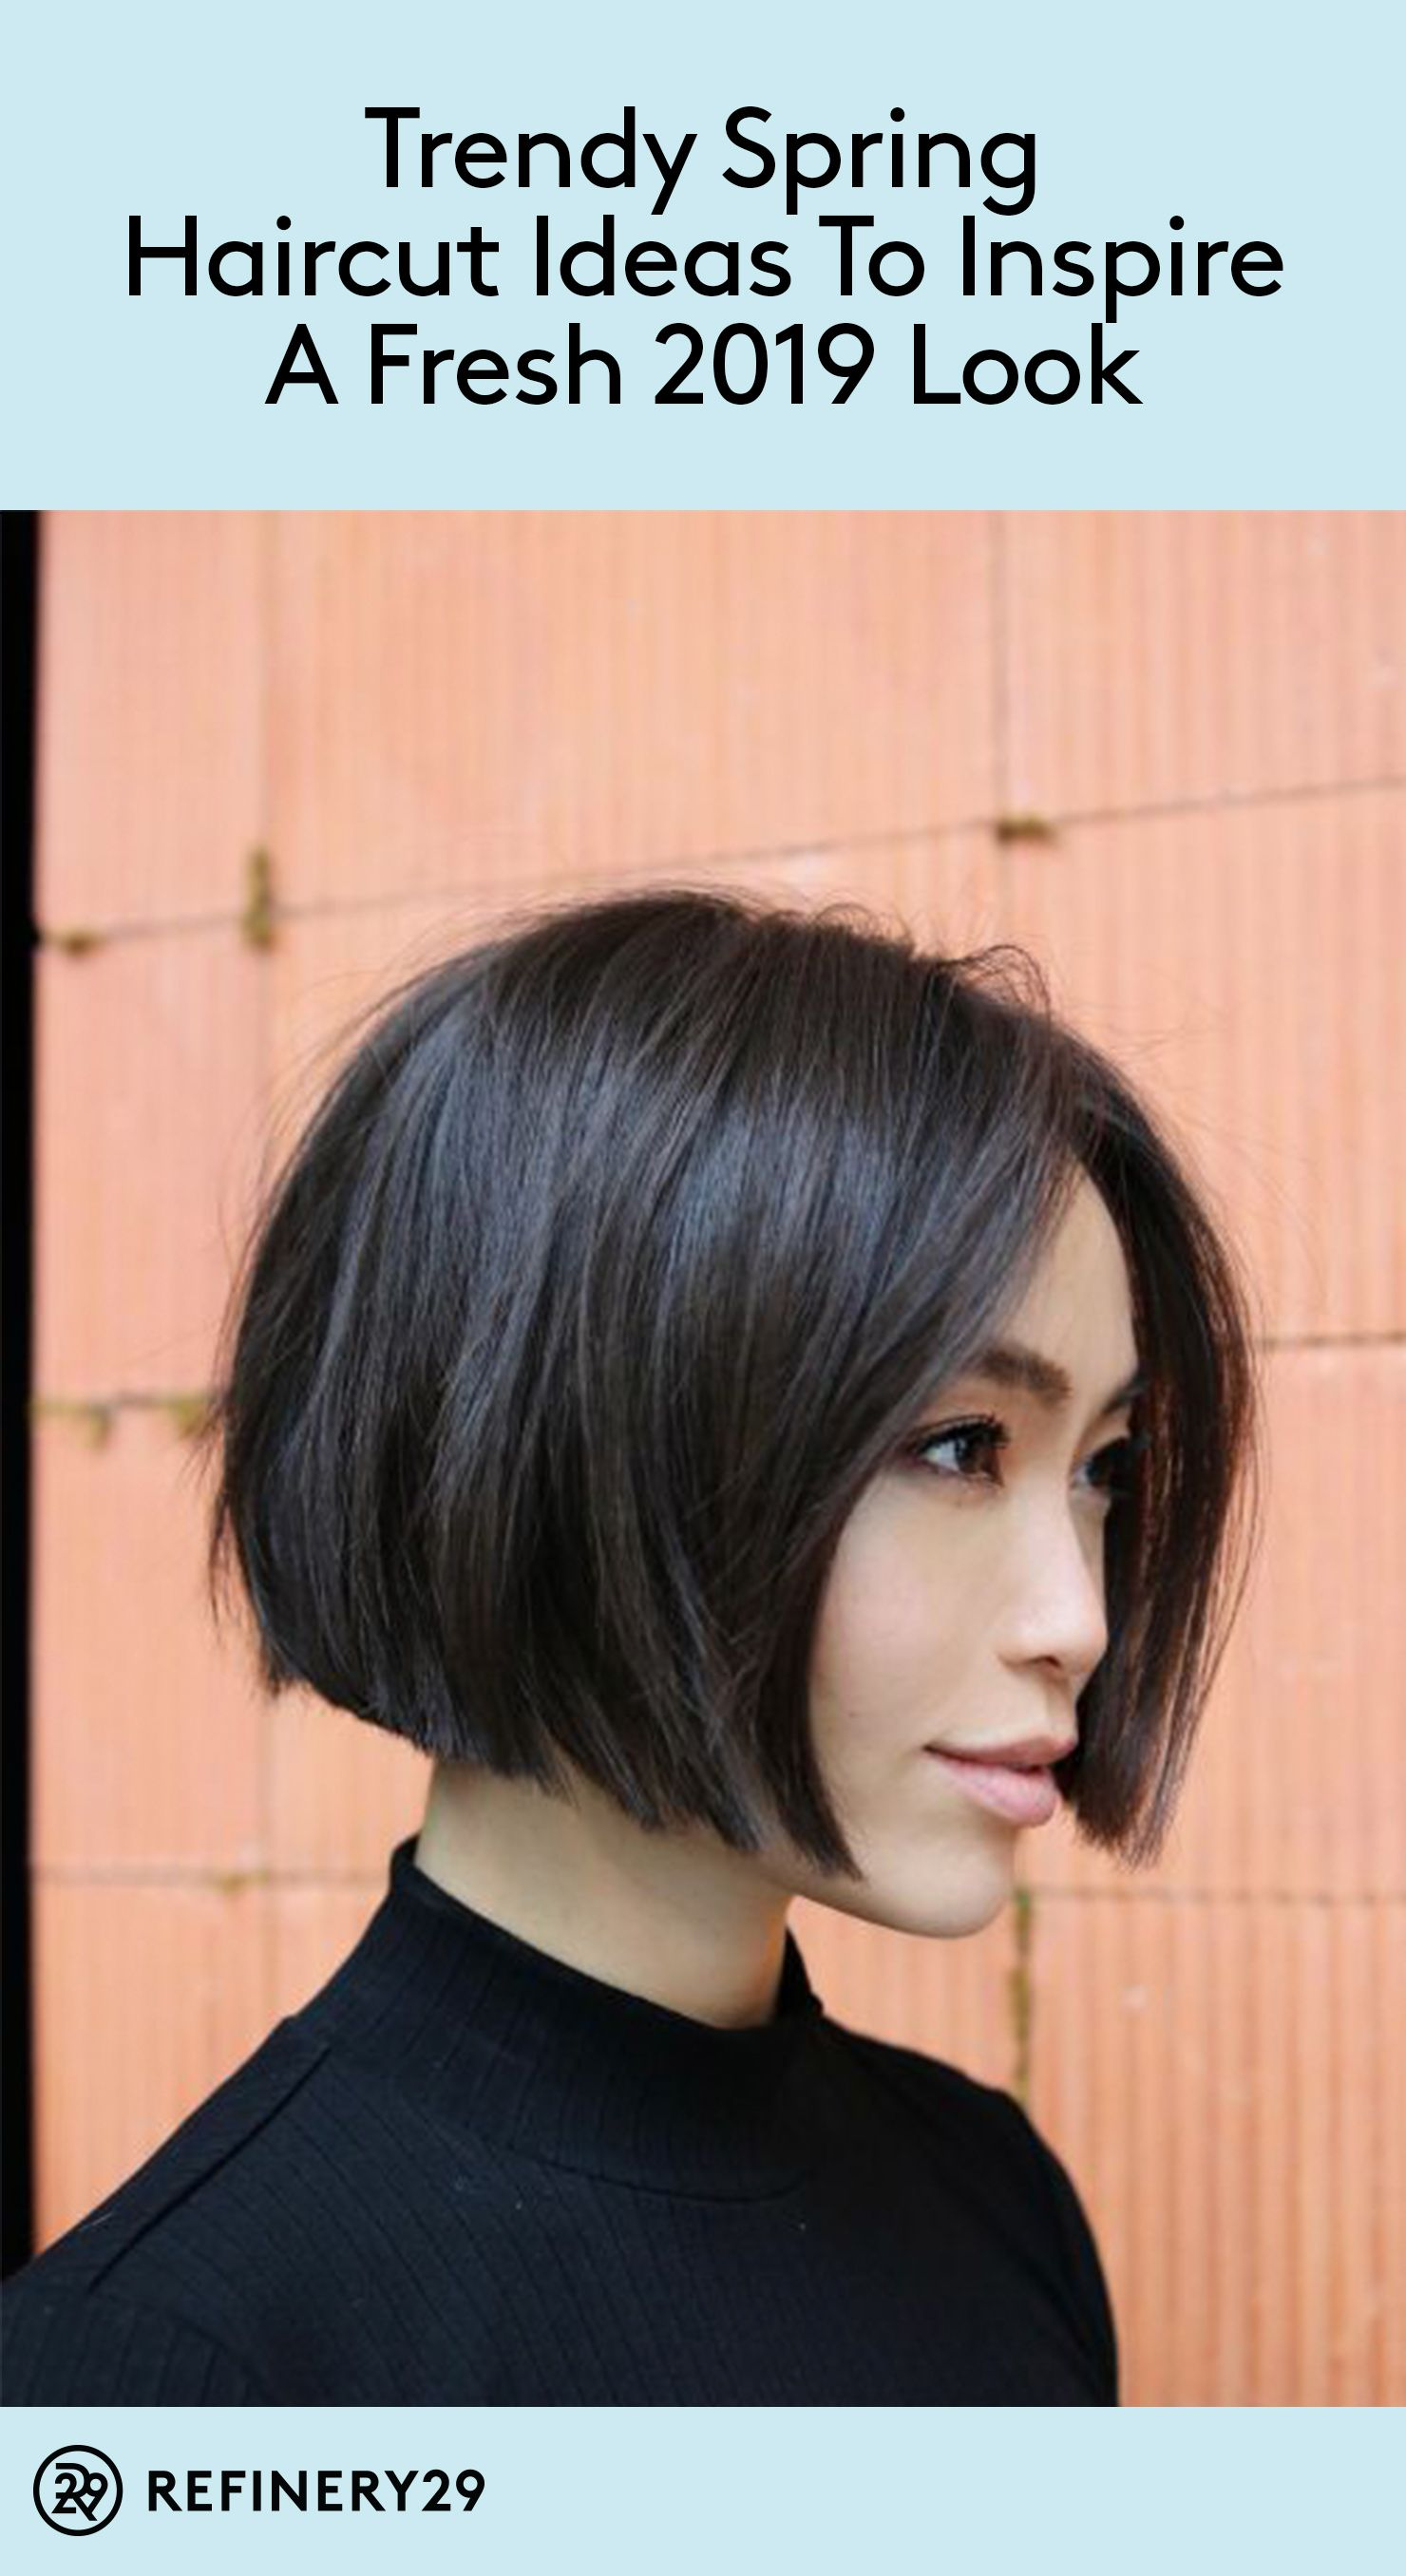 9 trendy haircuts to inspire your pre-Spring chop